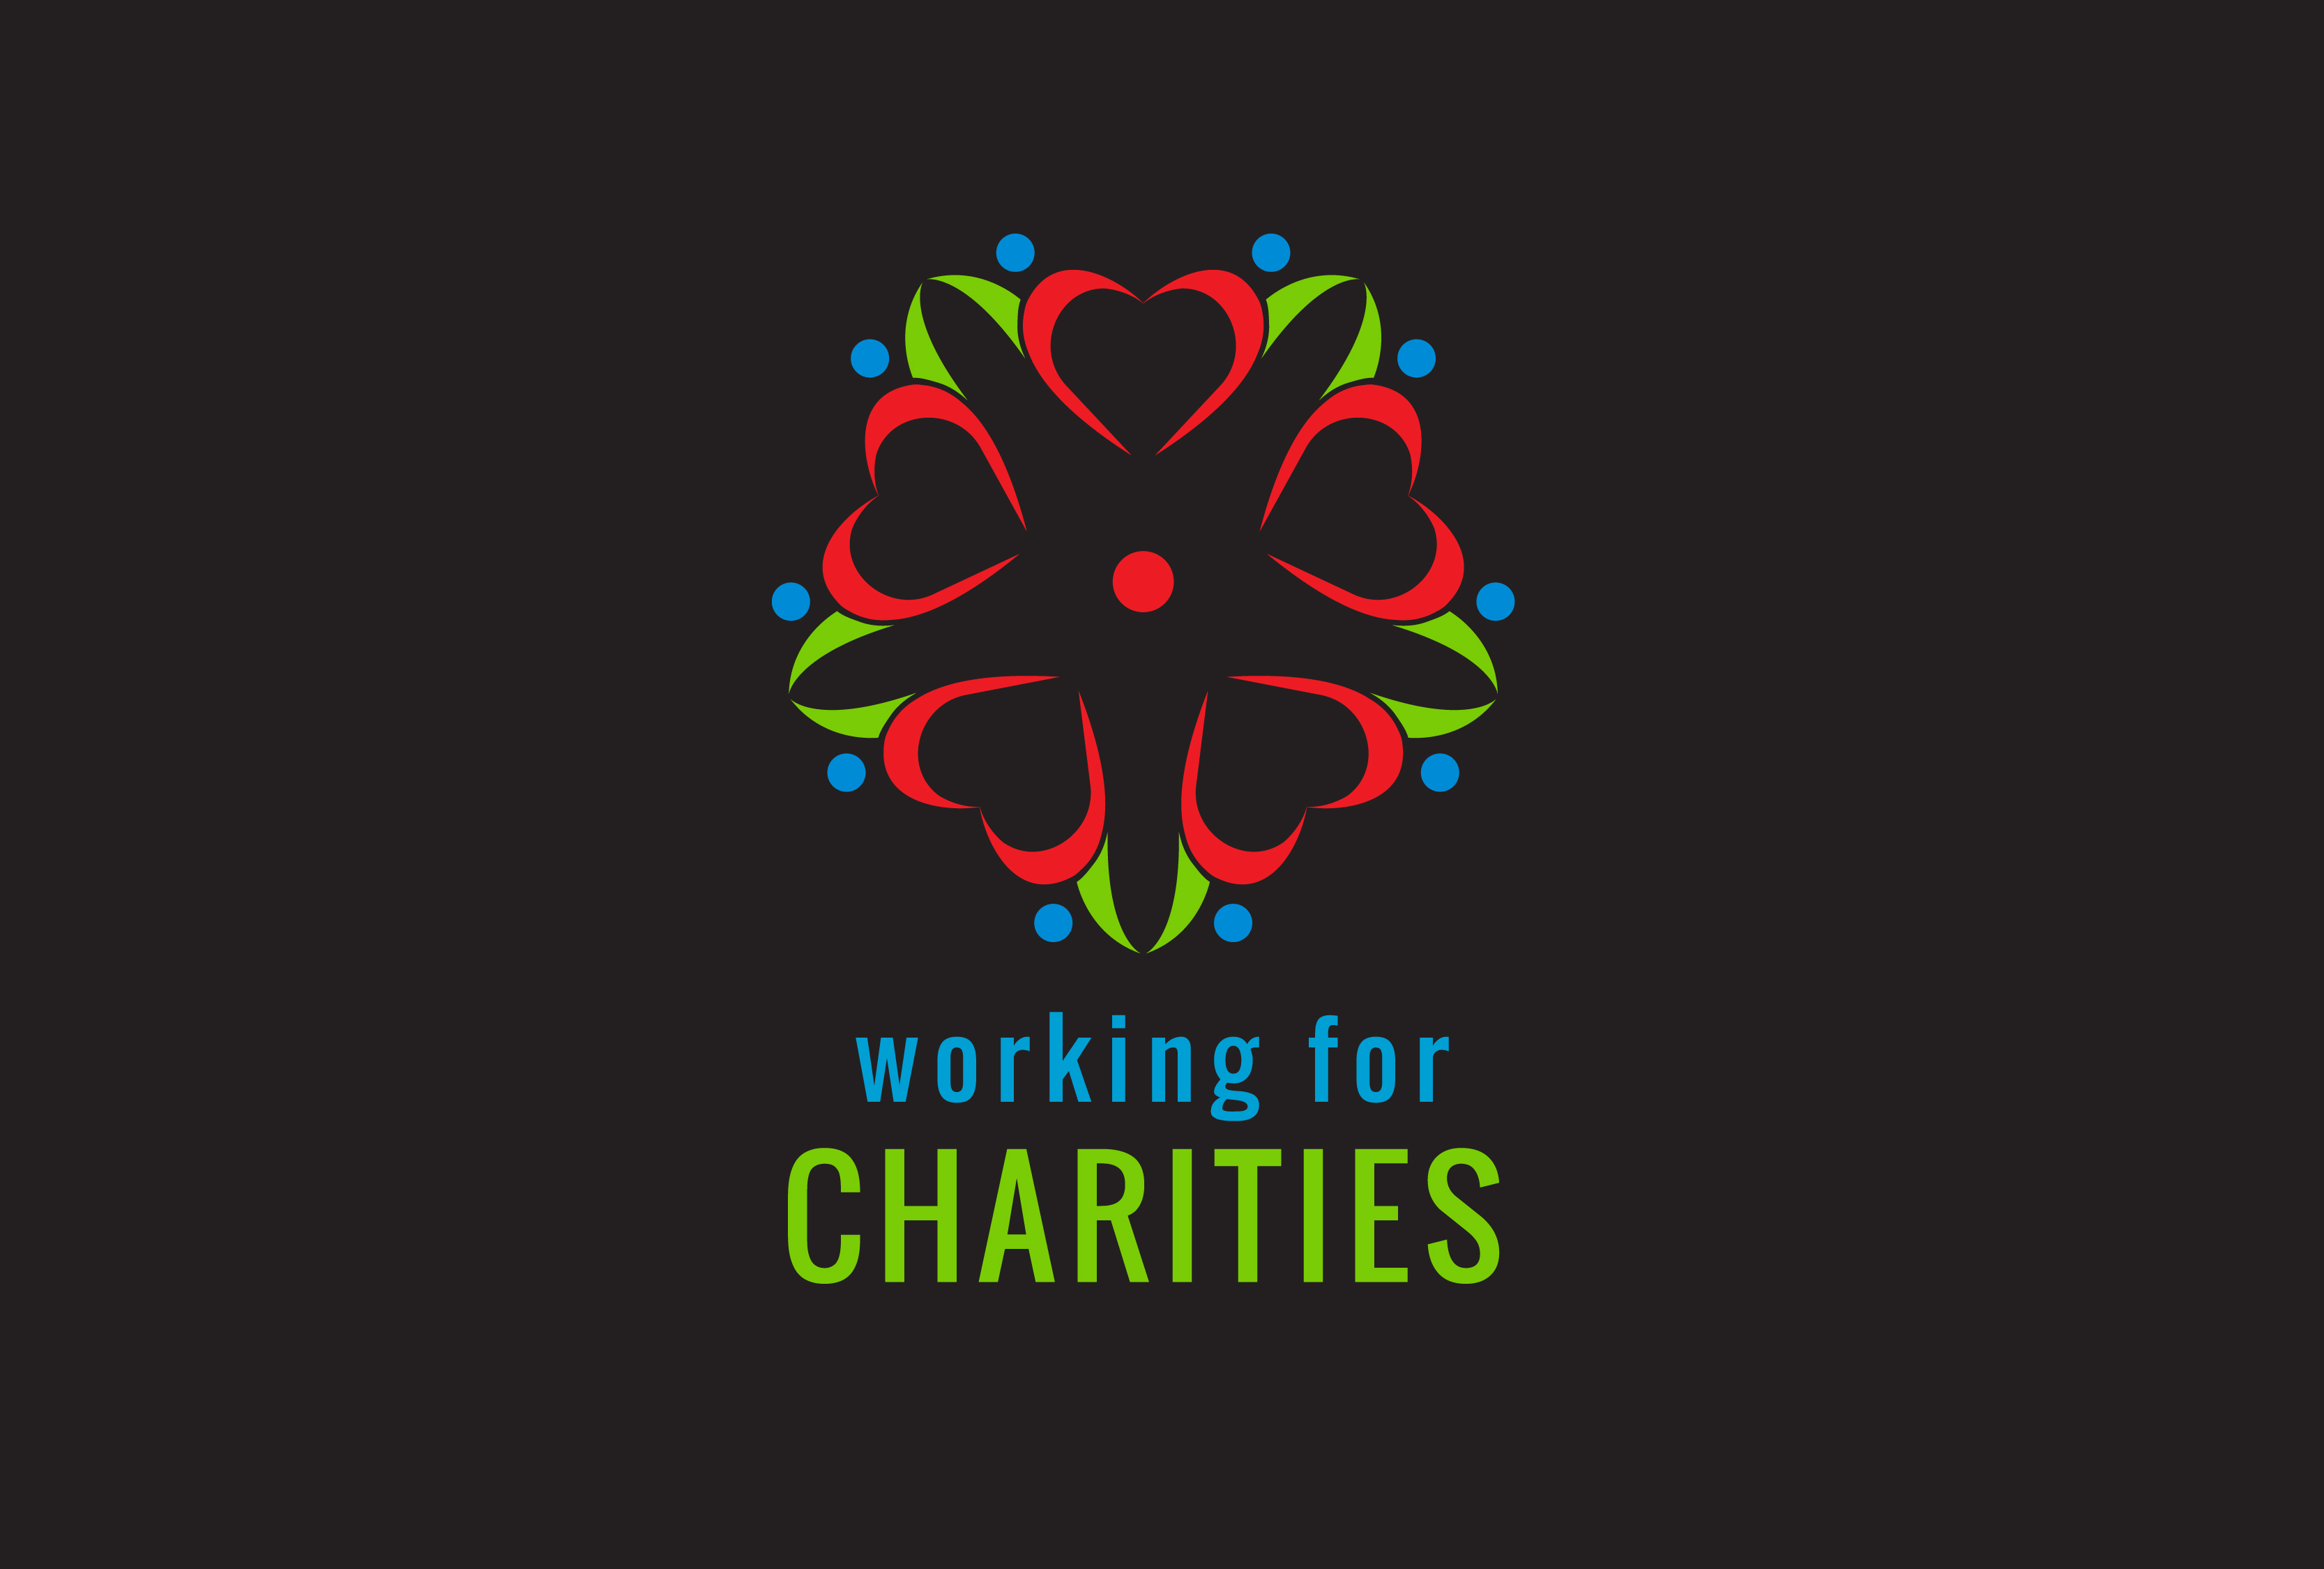 Working for Charities